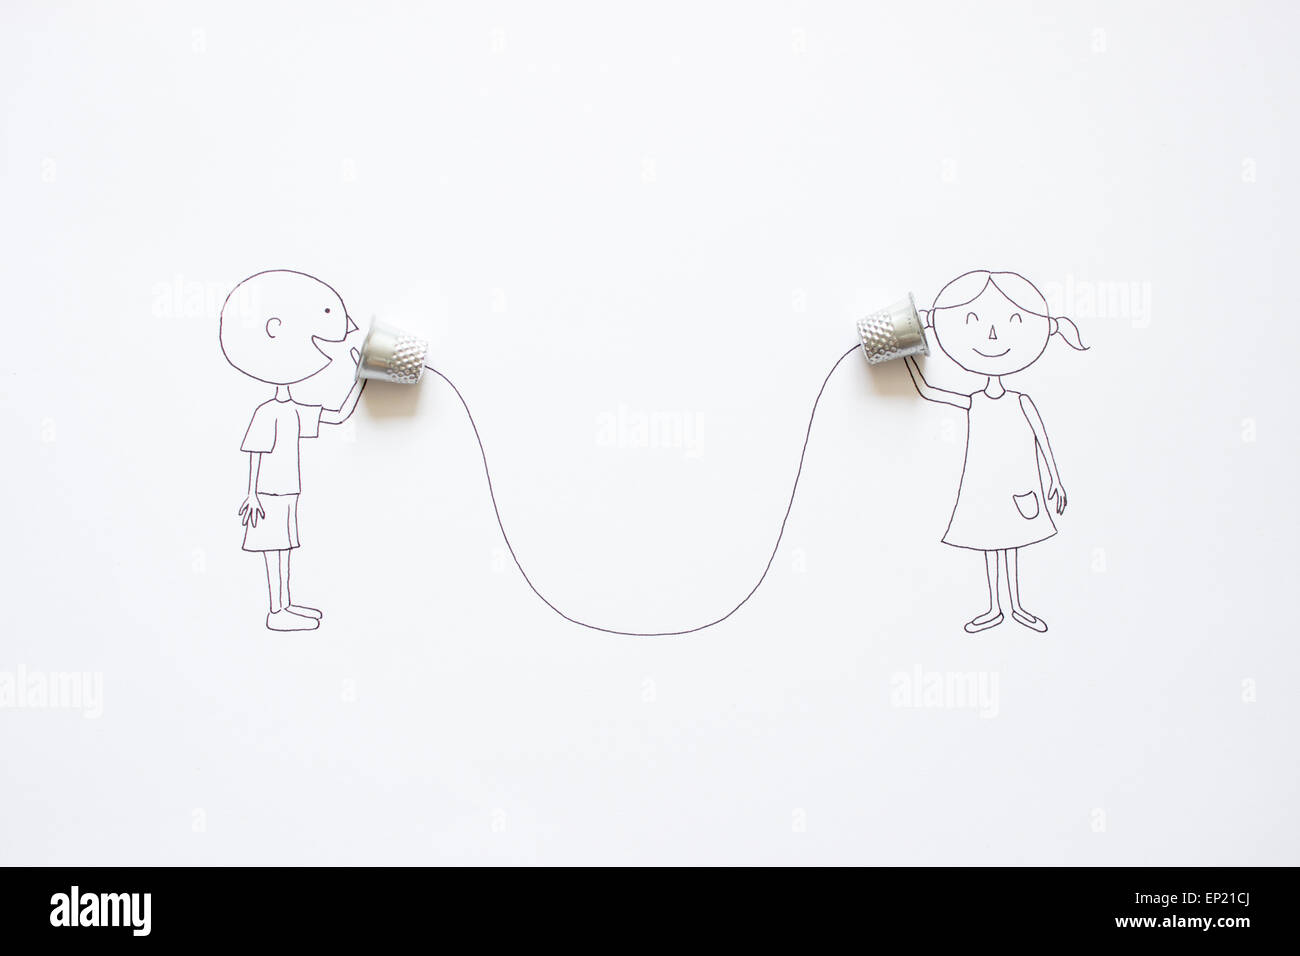 Conceptual boy and girl talking with tin can phones - Stock Image